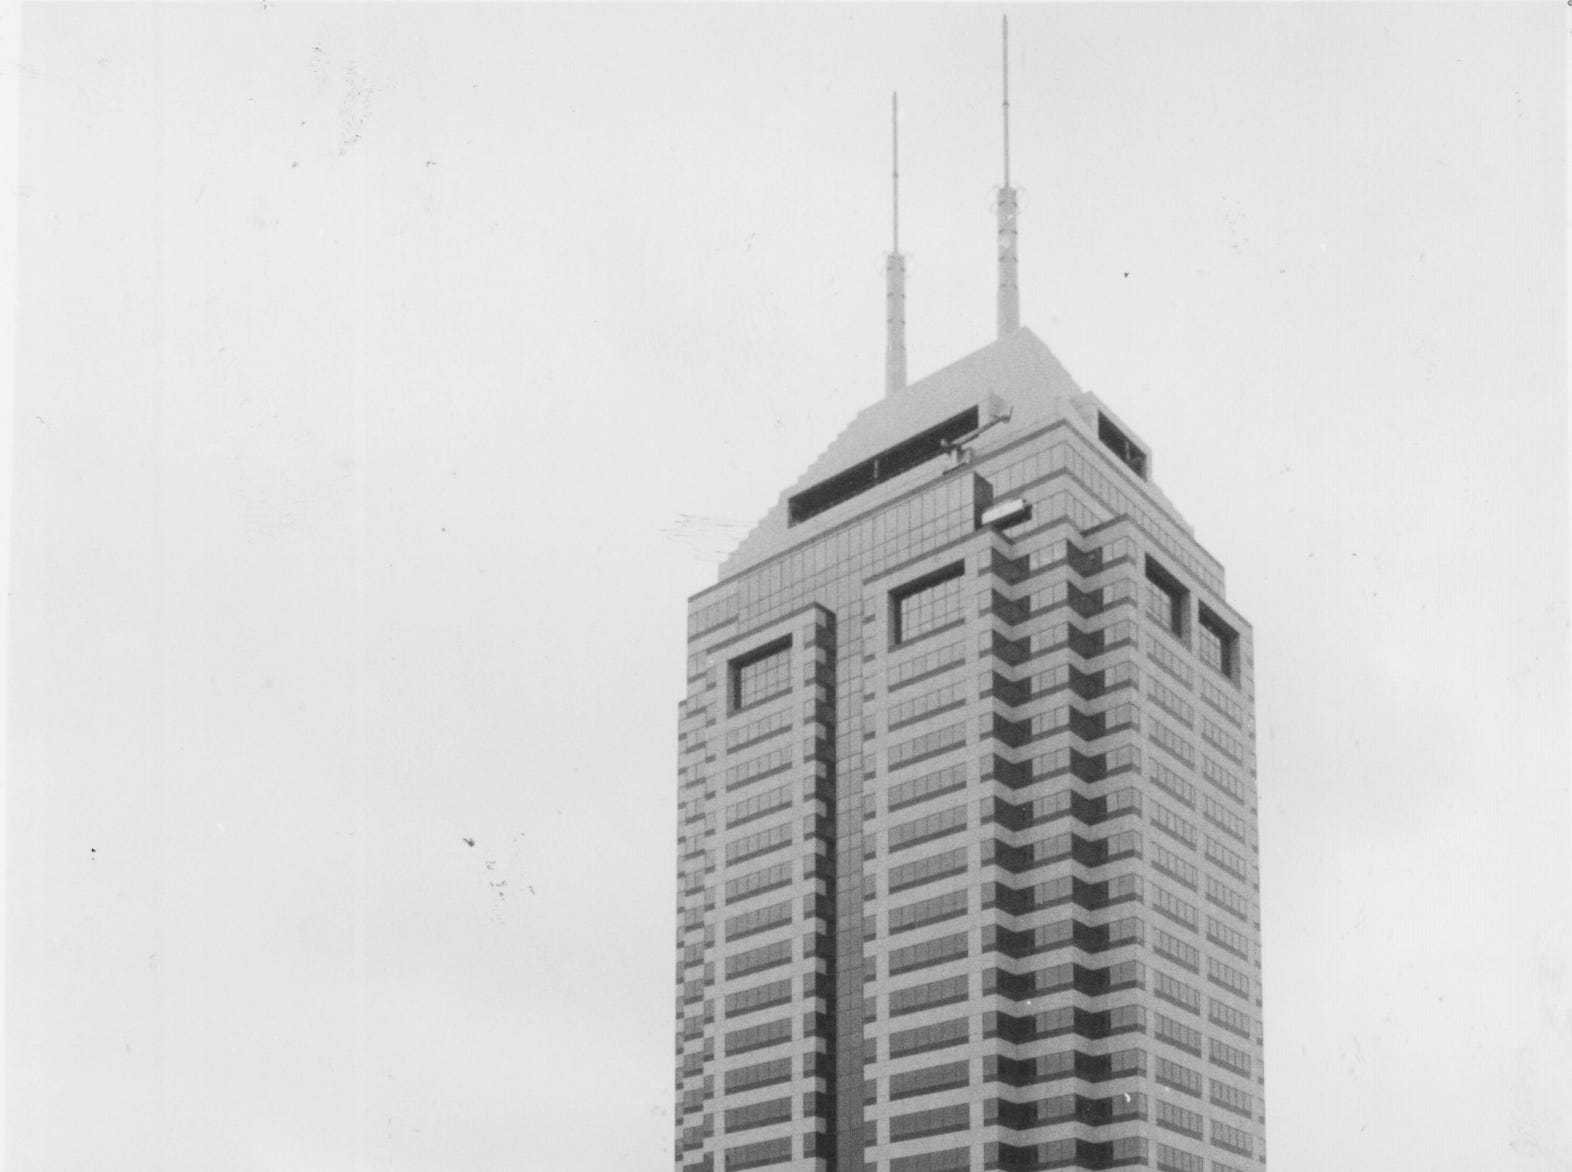 After years of planning and construction, the 52-story Bank One Center opened in September 1990.